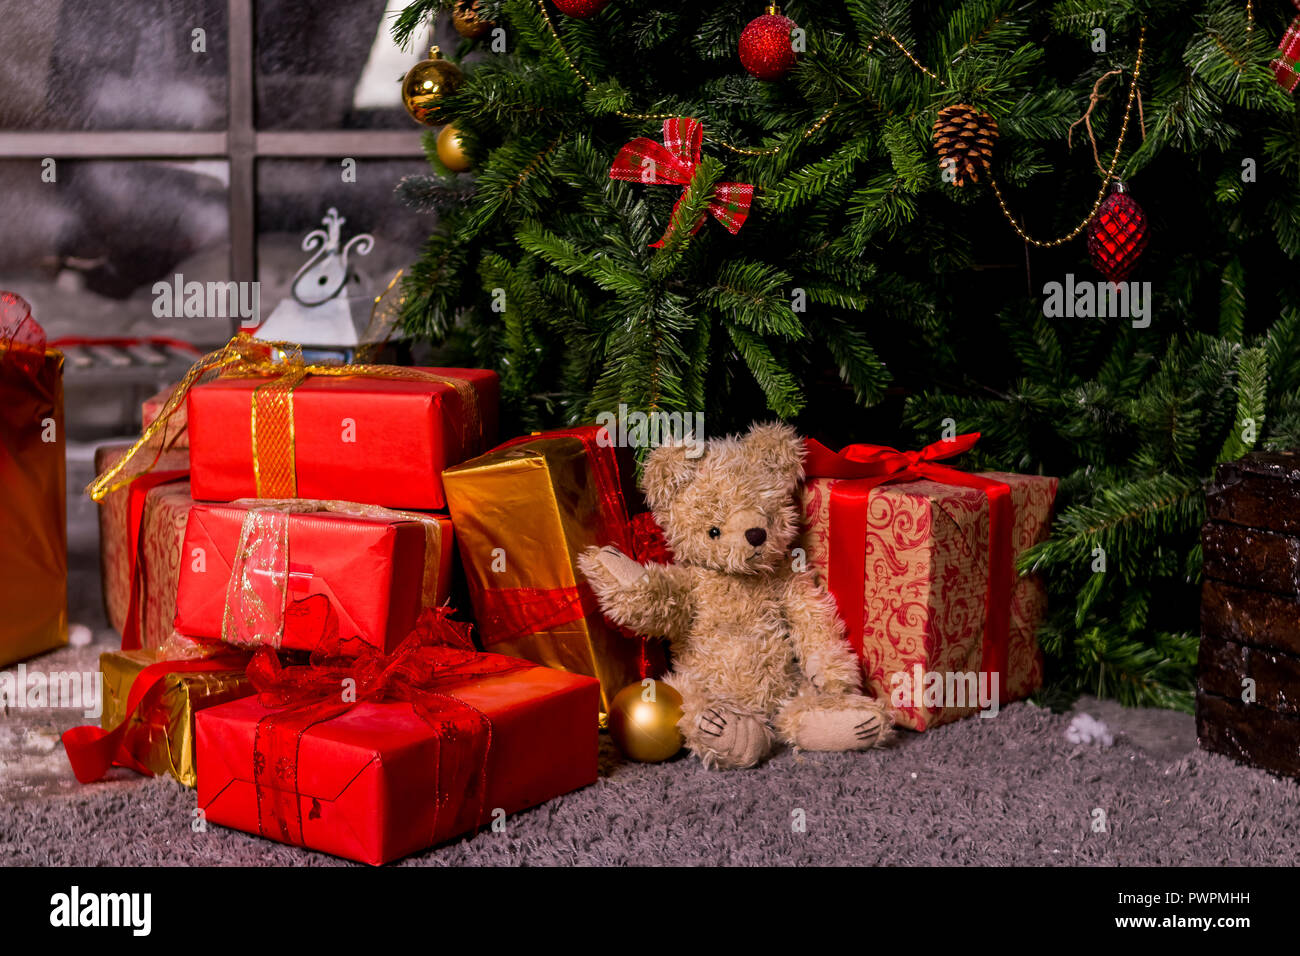 gifts under the Christmas tree, toy bear and boxes, the concept of a ...